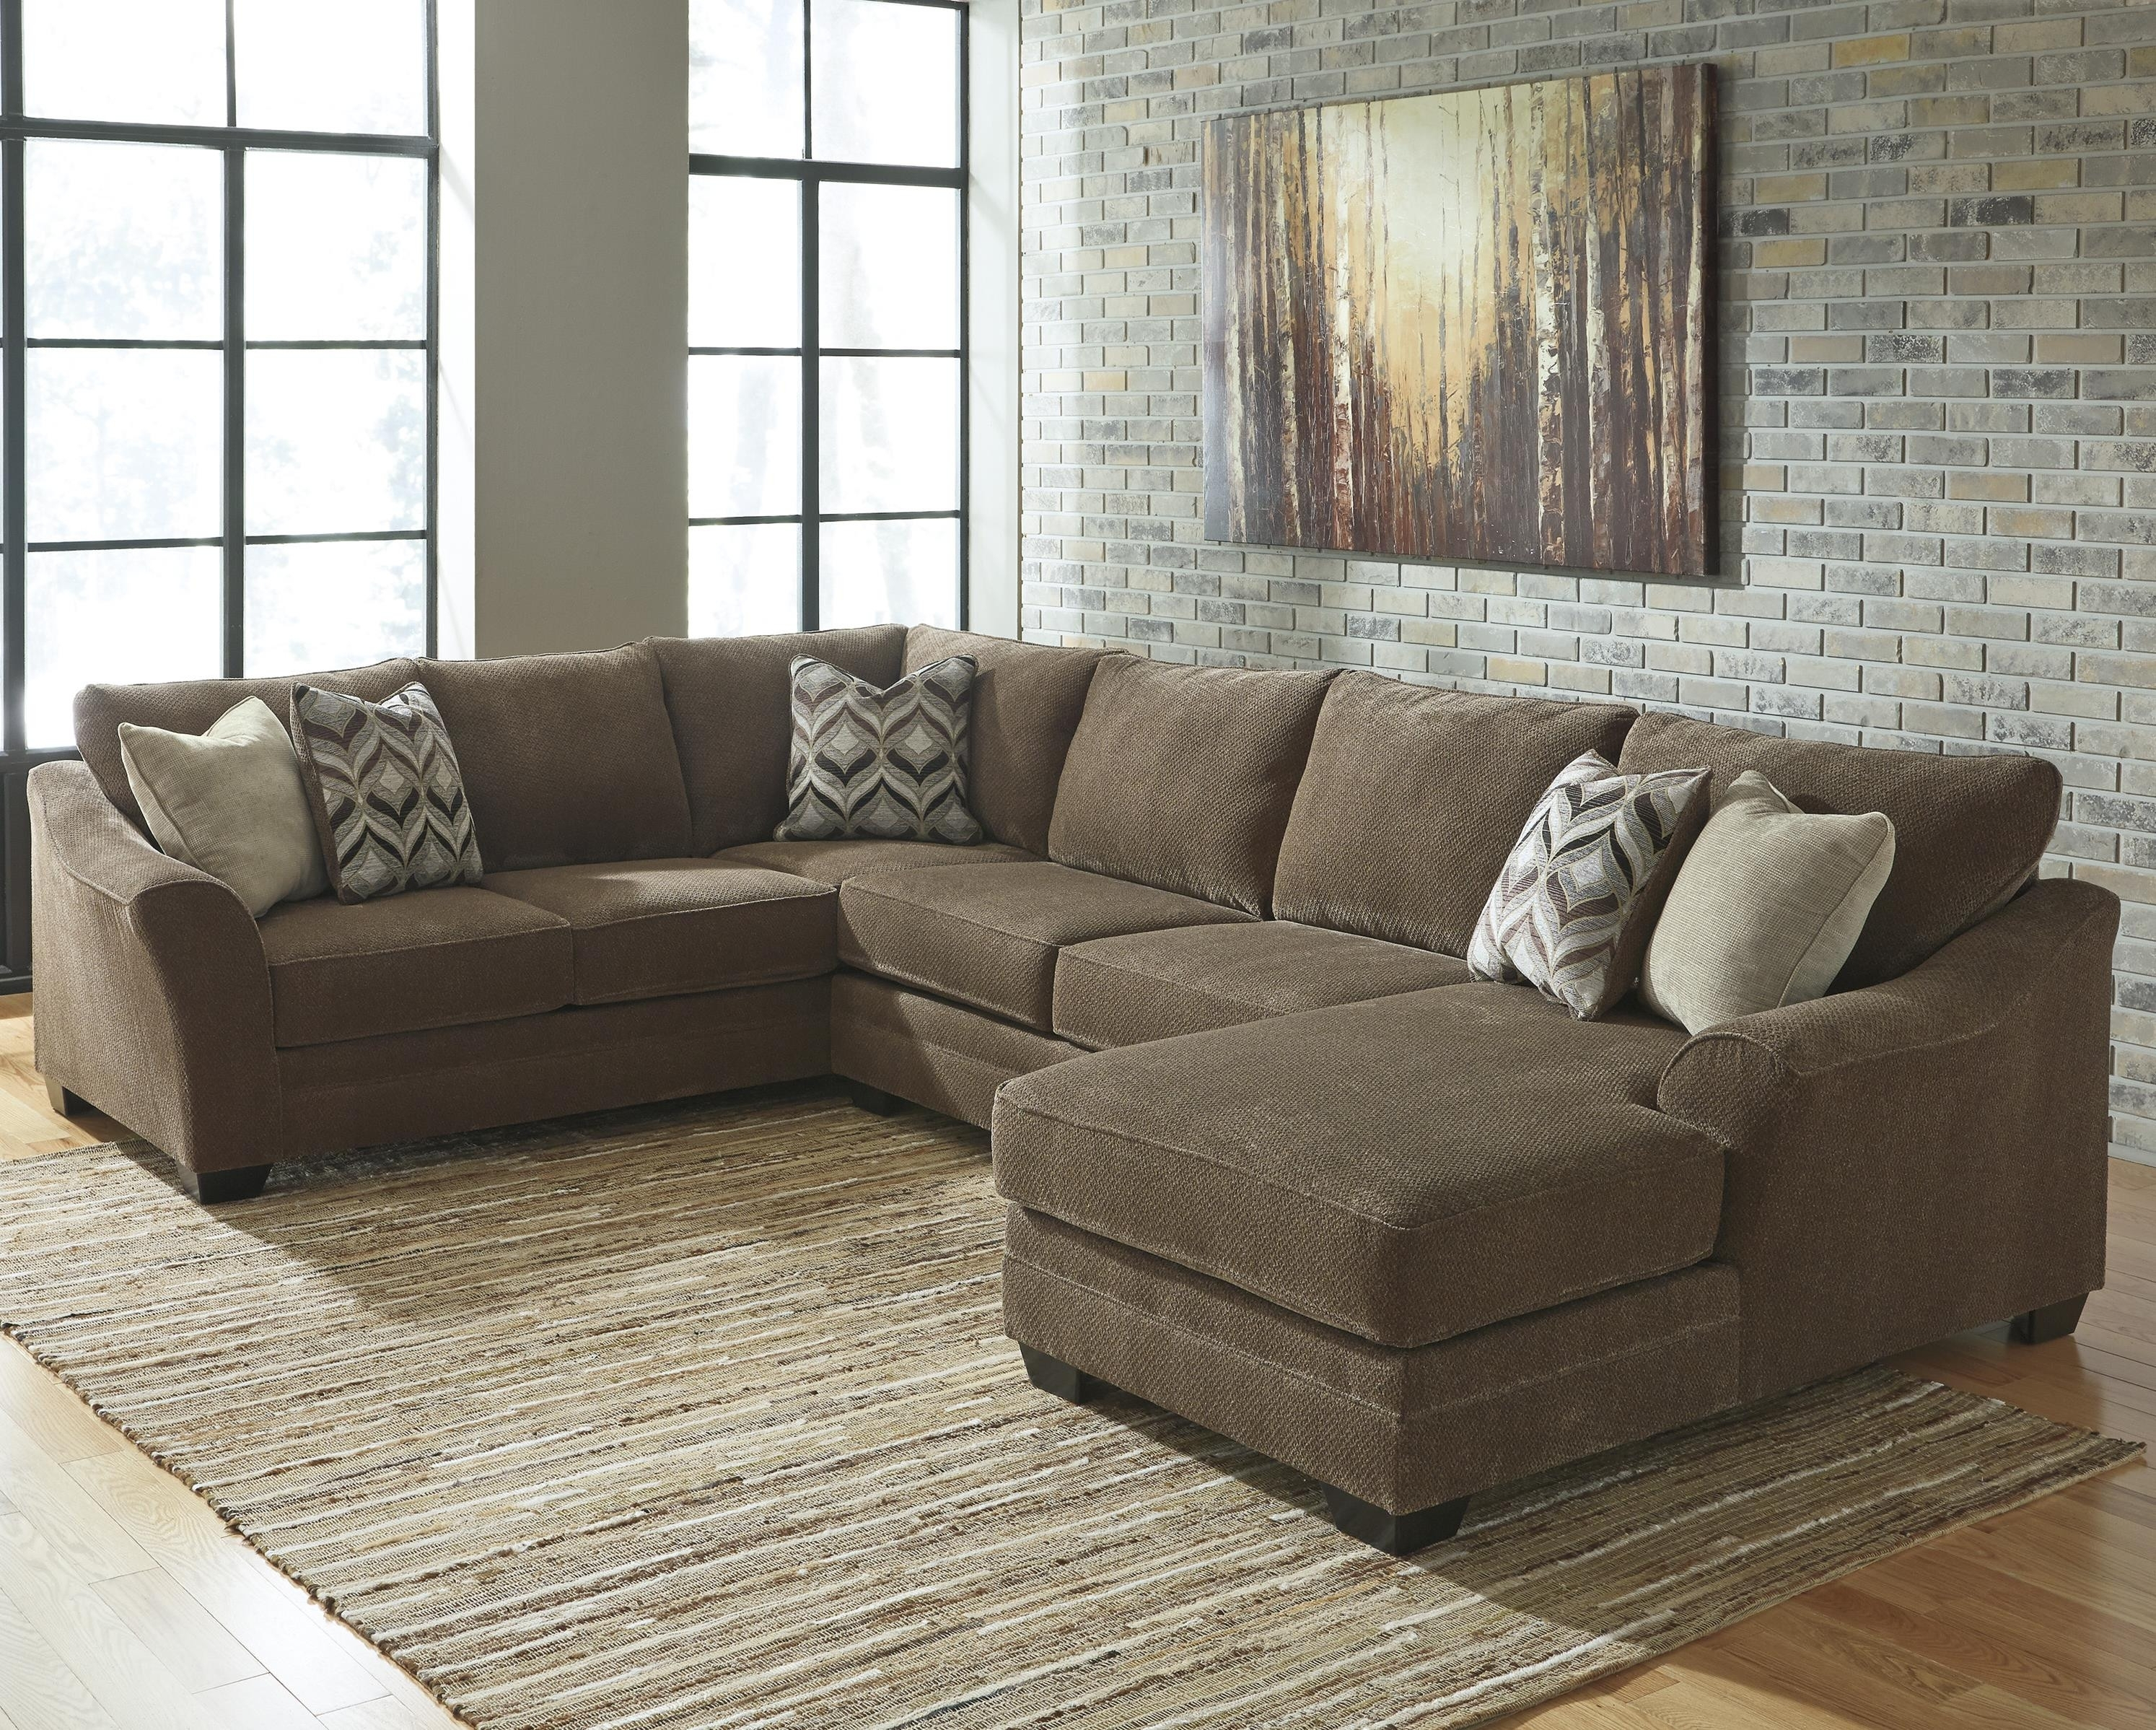 Elegant 3 Piece Microfiber Sectional Sofa – Buildsimplehome For Sierra Down 3 Piece Sectionals With Laf Chaise (Image 11 of 25)